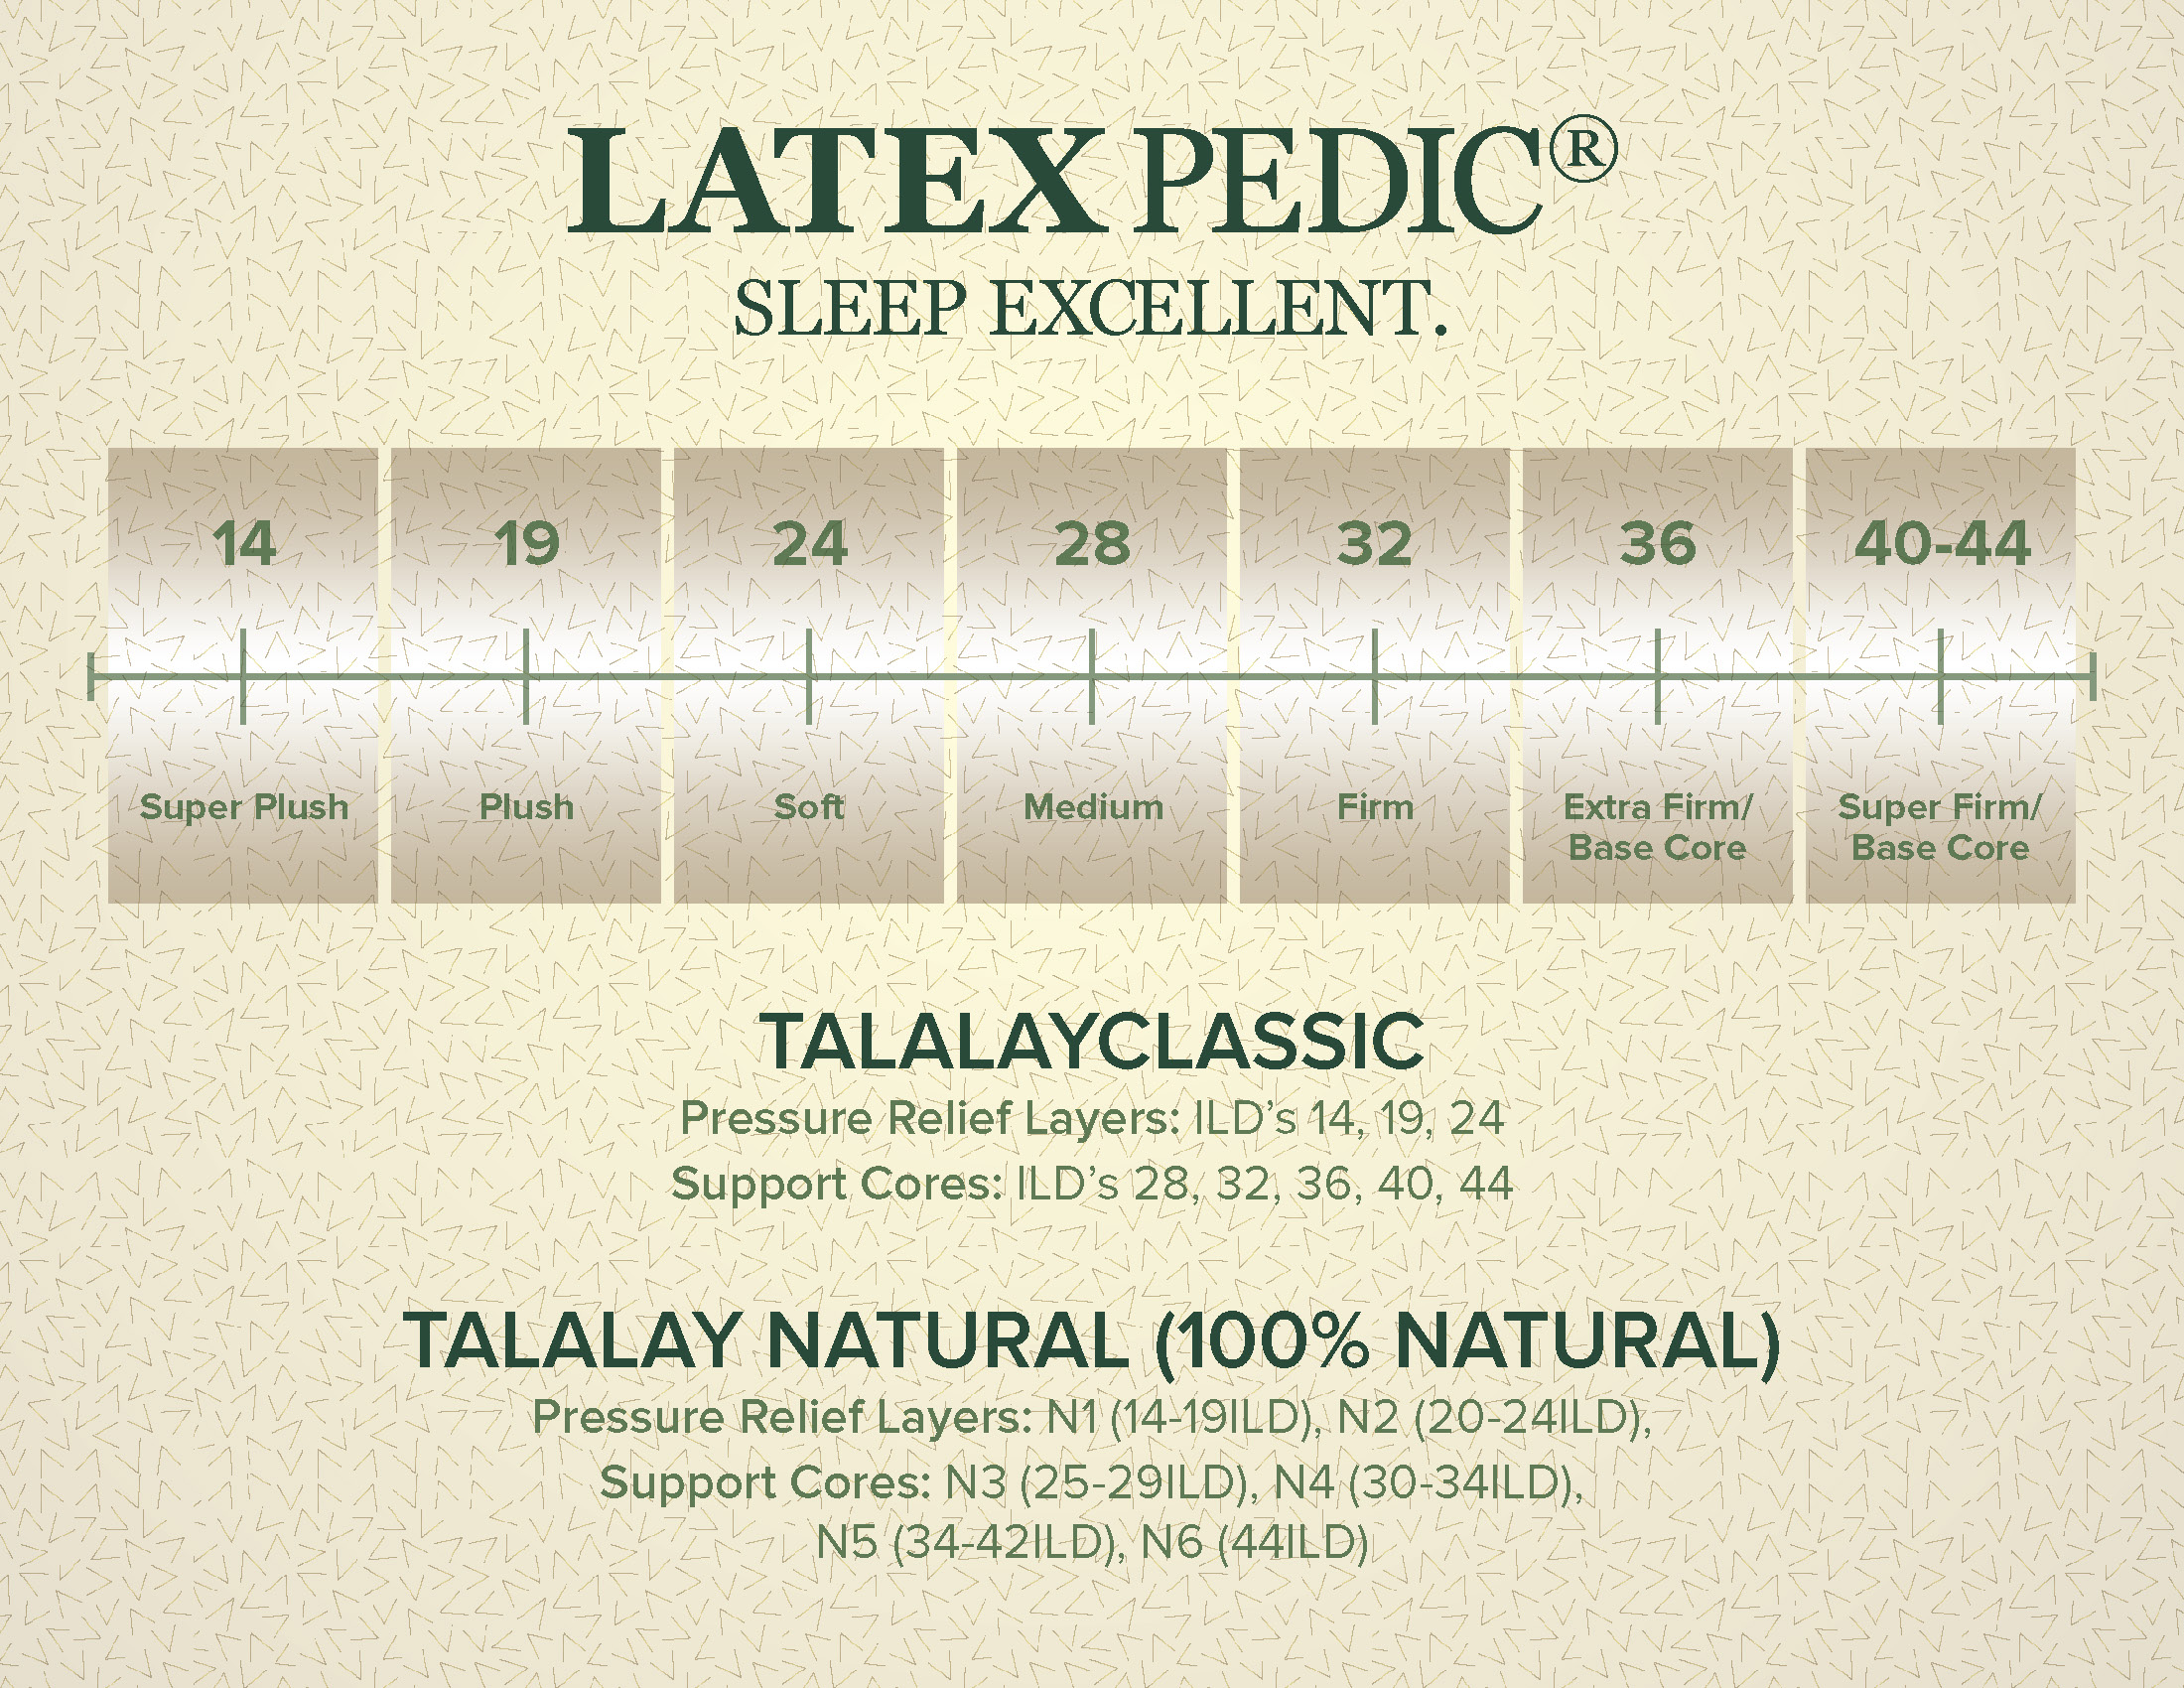 store Perfect Firmness Los Angeles CA Santa Ana Costa Mesa Long Beach  orthopedic firm soft plush luxury mattress Talalay wrapped pocketed coil best highest rated quality adjustable beds